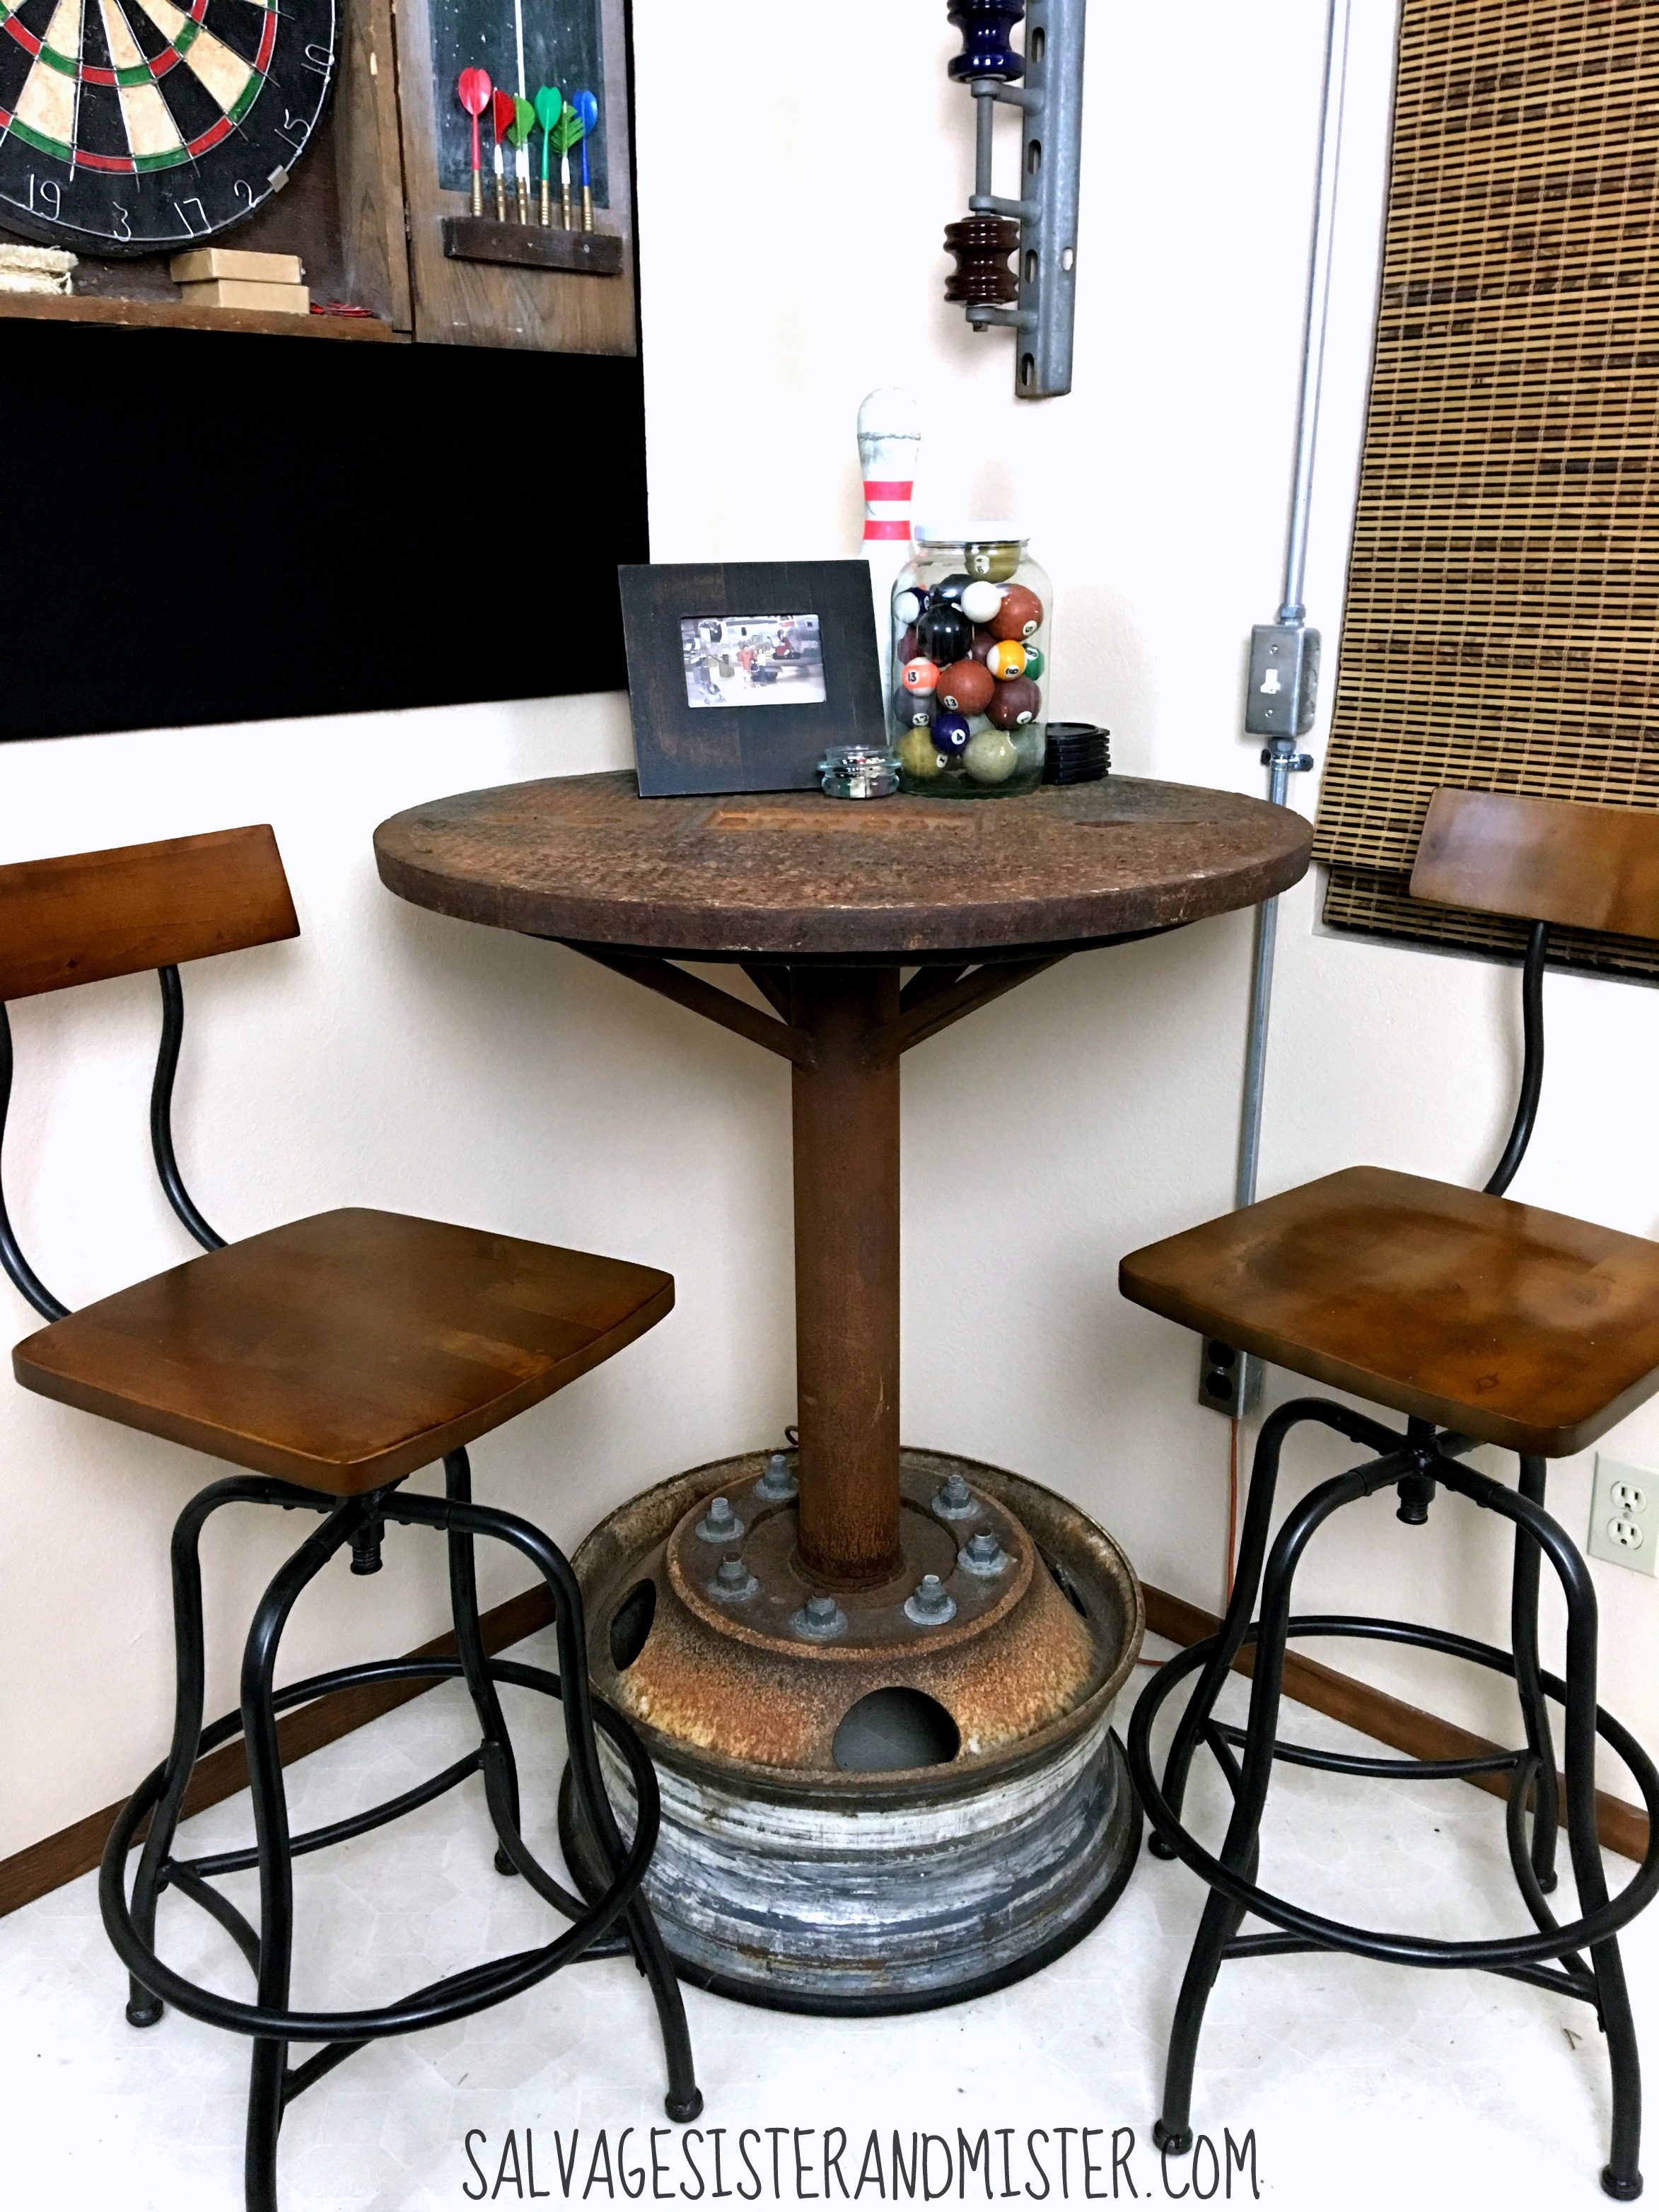 Industrial wheel bar table by Salvage Sister And Mister, featured on Funky Junk Interiors